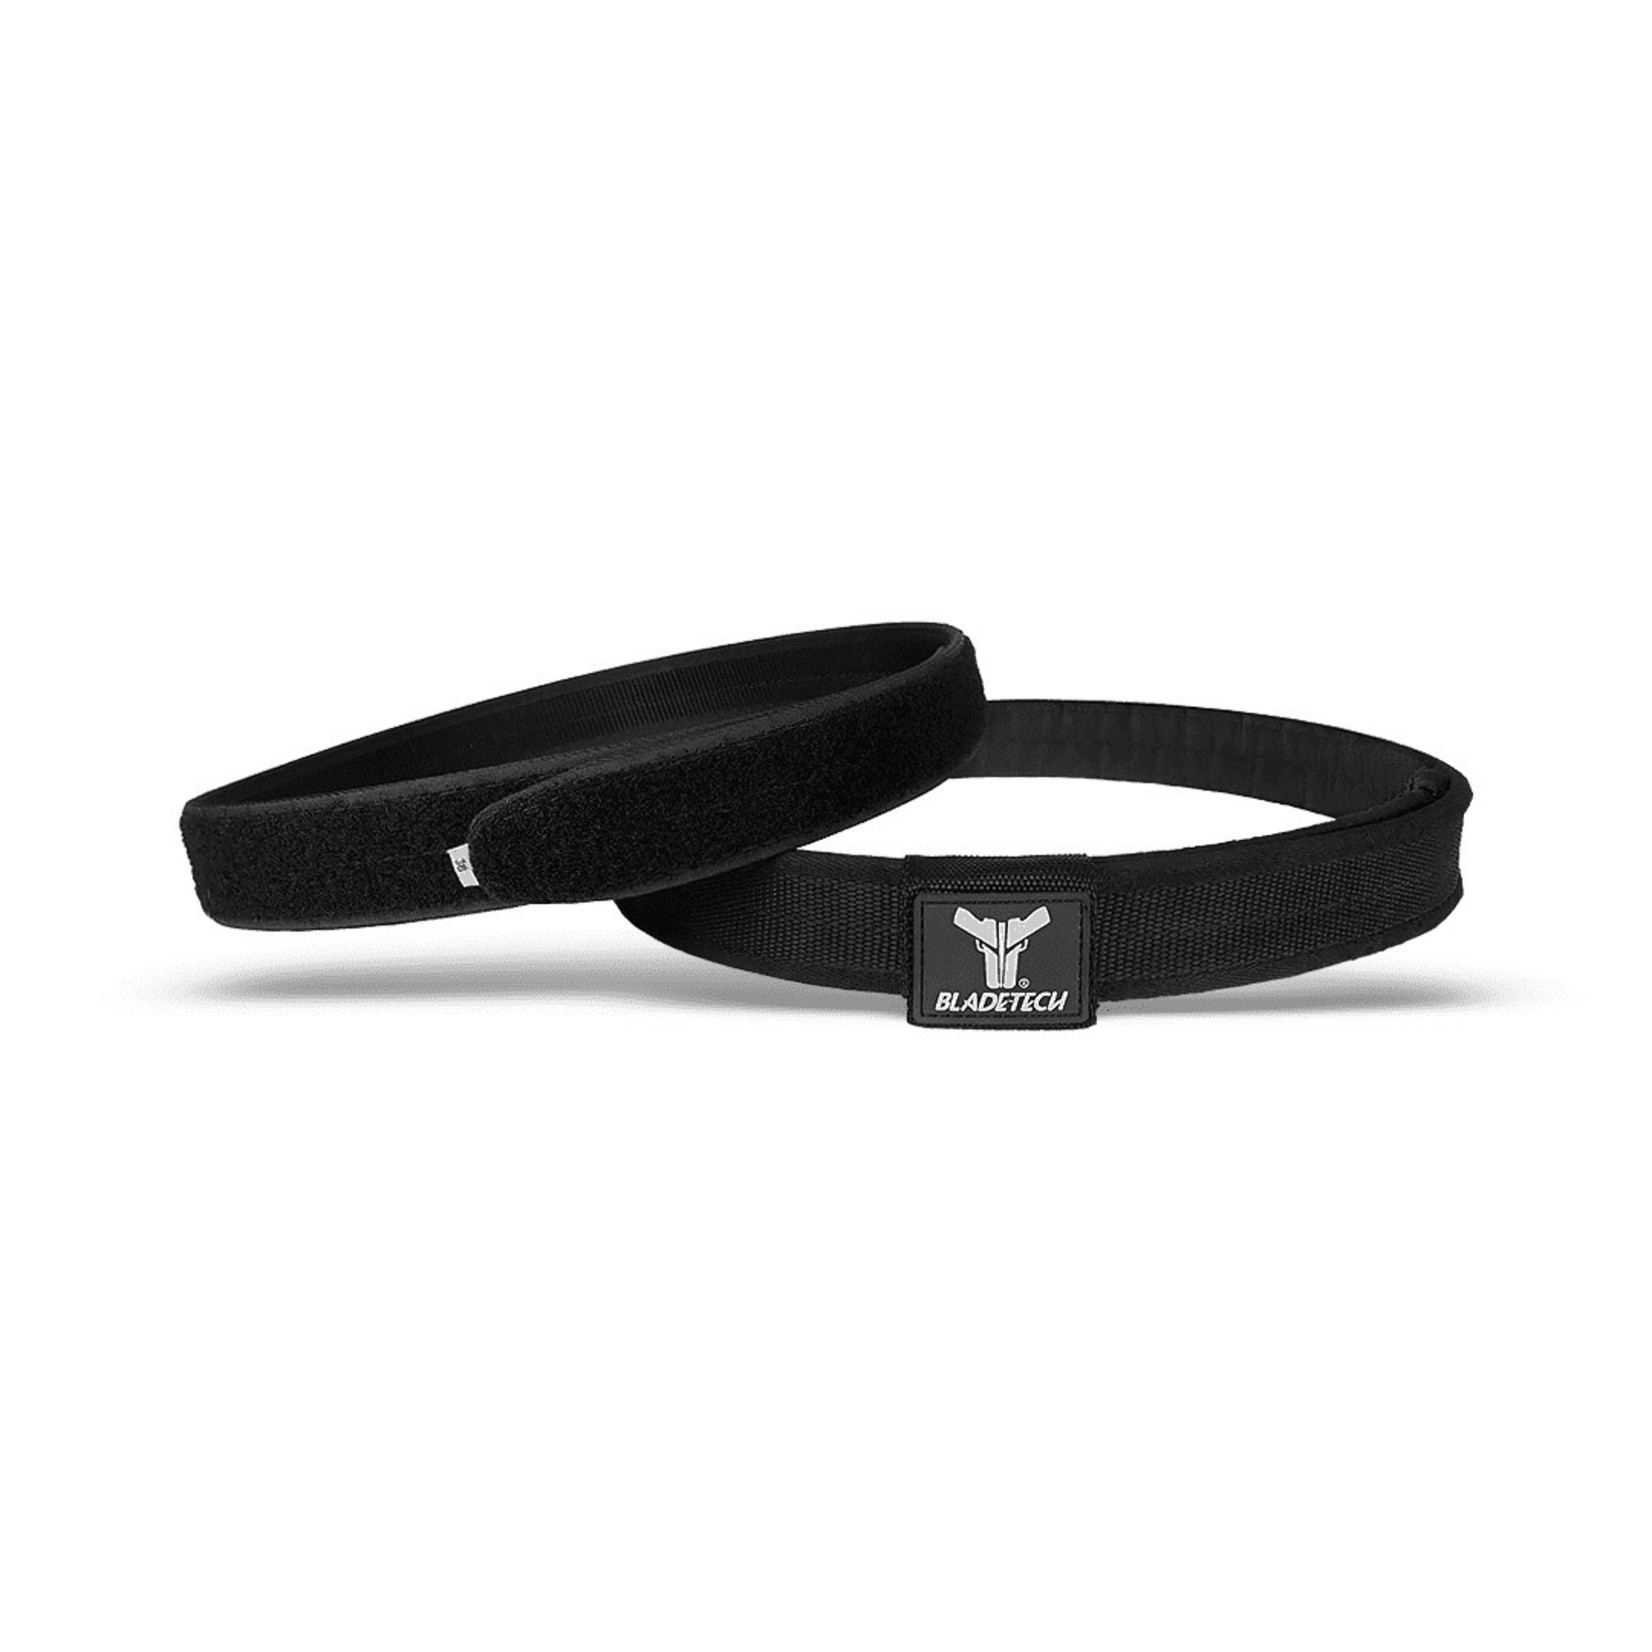 BLADE-TECH VELOCITY COMPETITION SPEED BELT